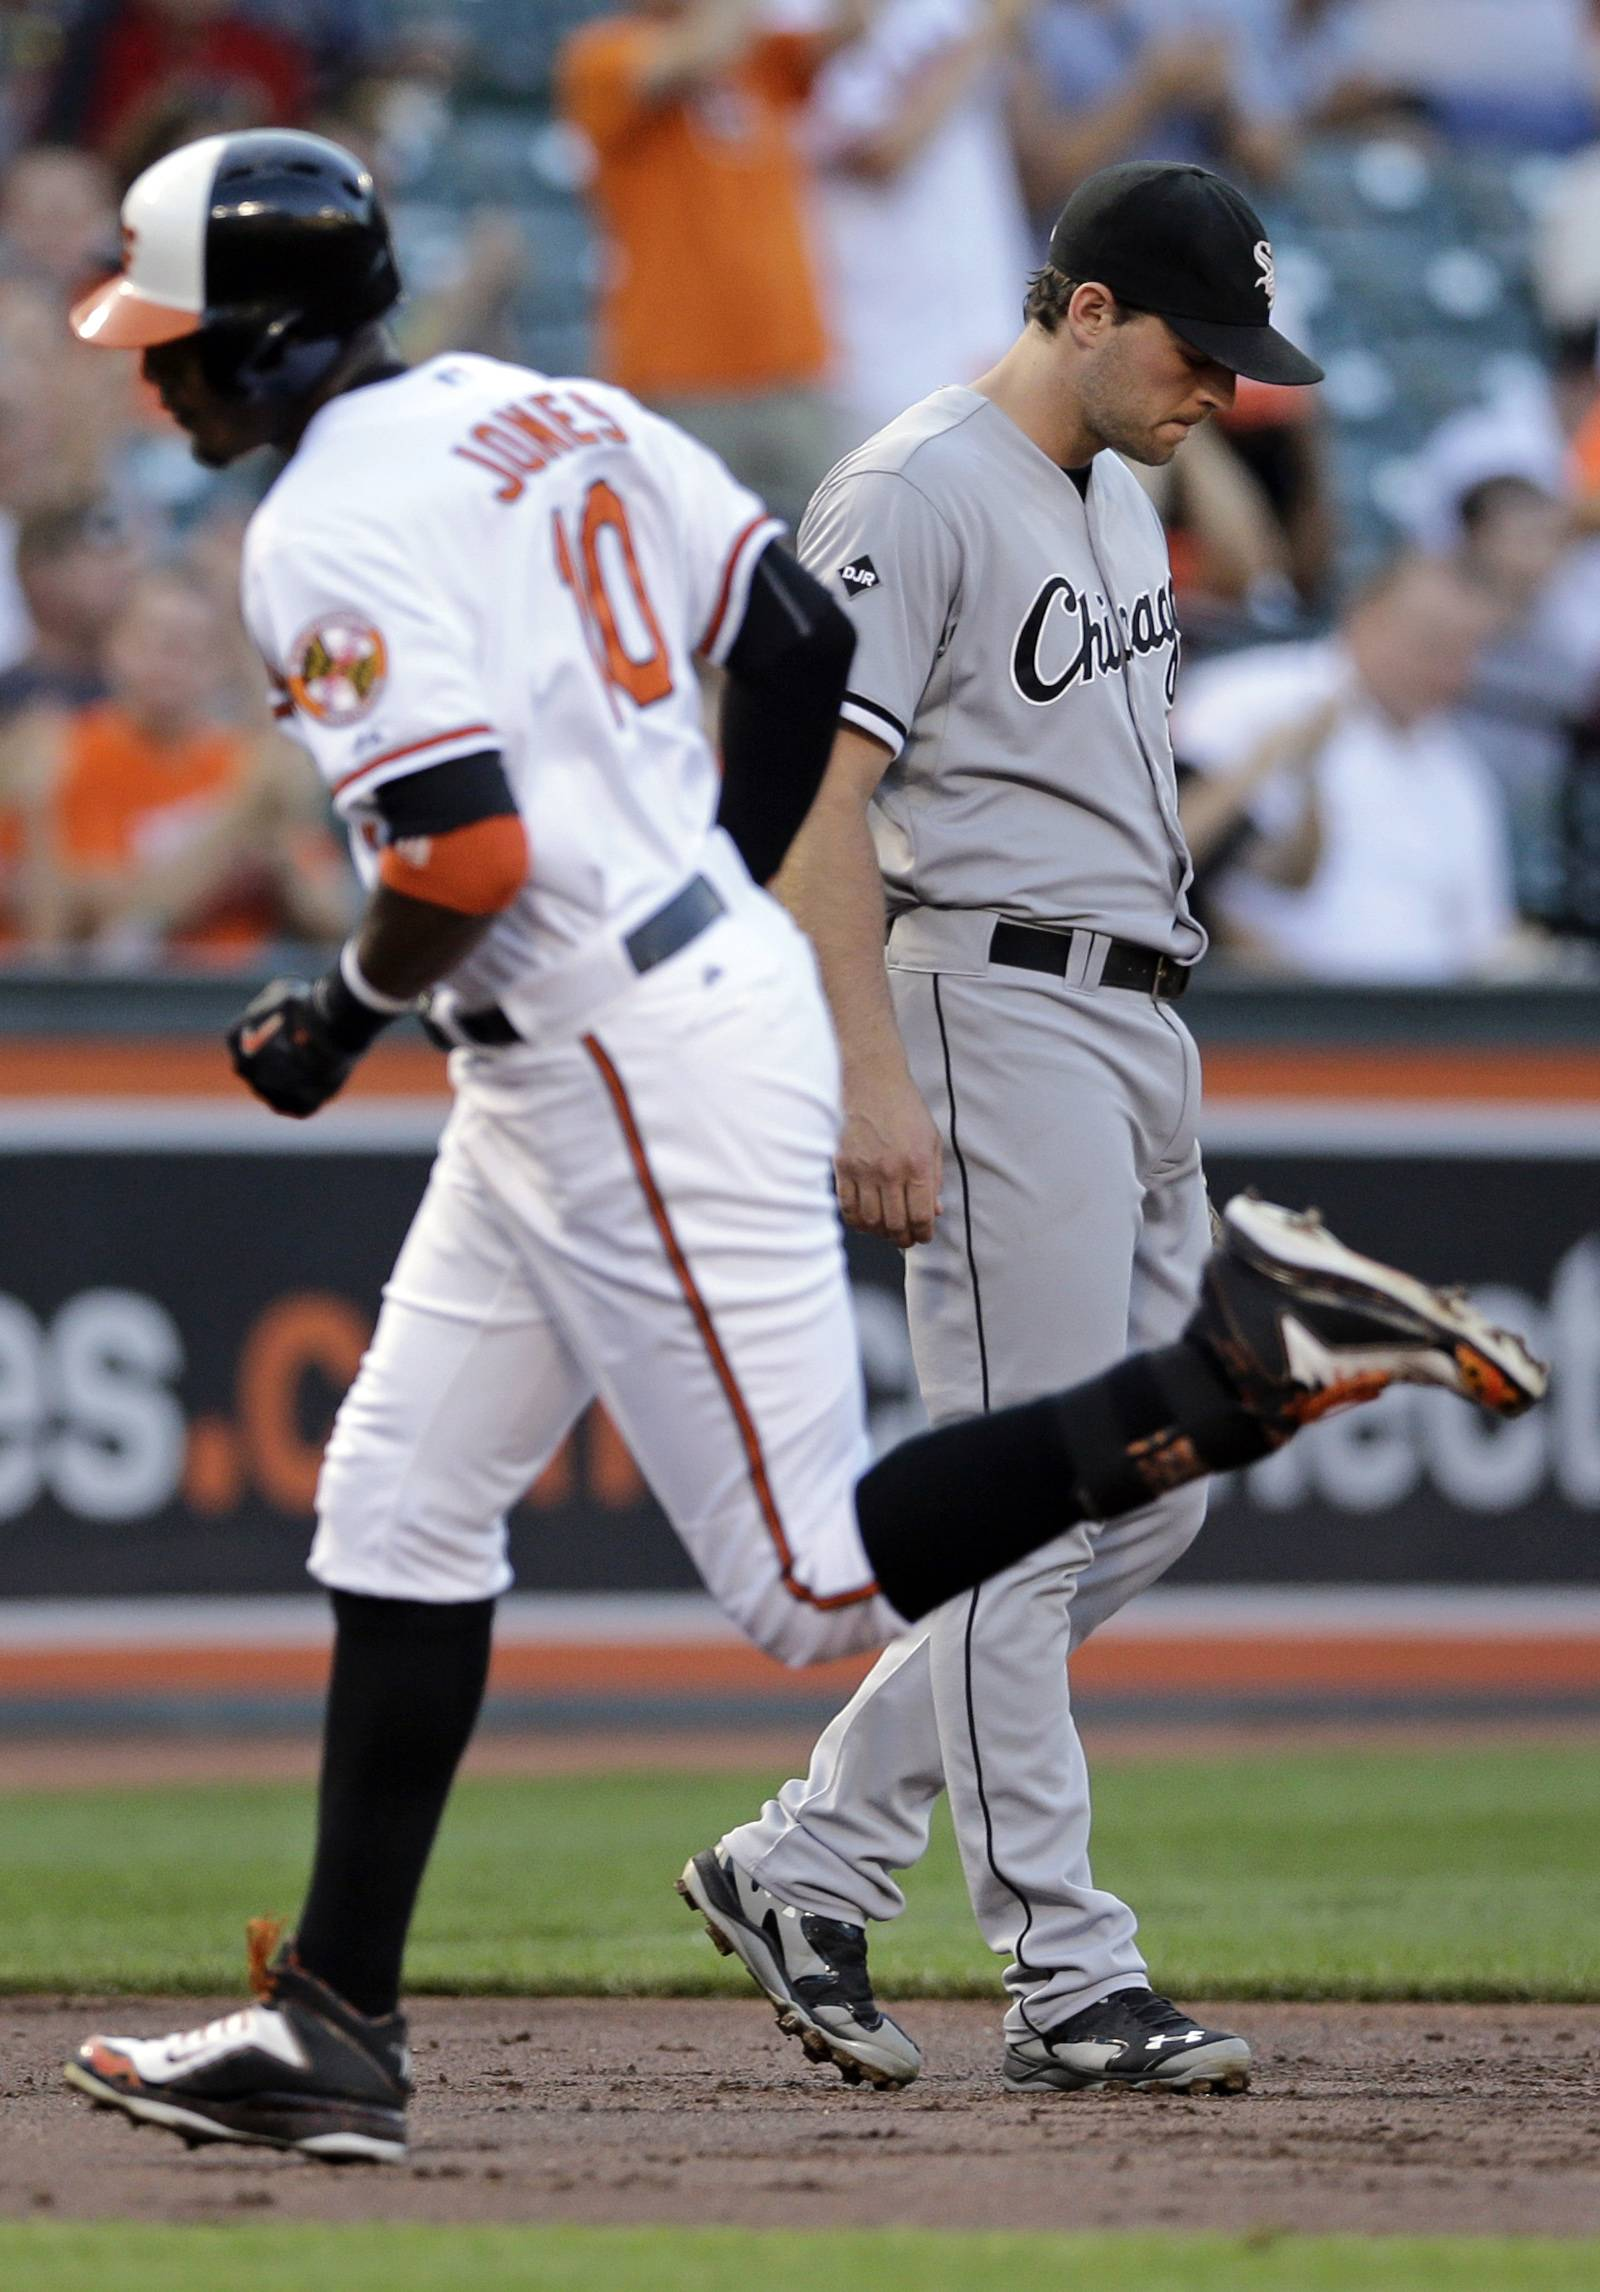 Chicago White Sox third baseman Conor Gillaspie, back right, walks in the infield as Baltimore Orioles' Adam Jones rounds the bases after hitting a two-run home run in the first inning of a baseball game Monday in Baltimore.